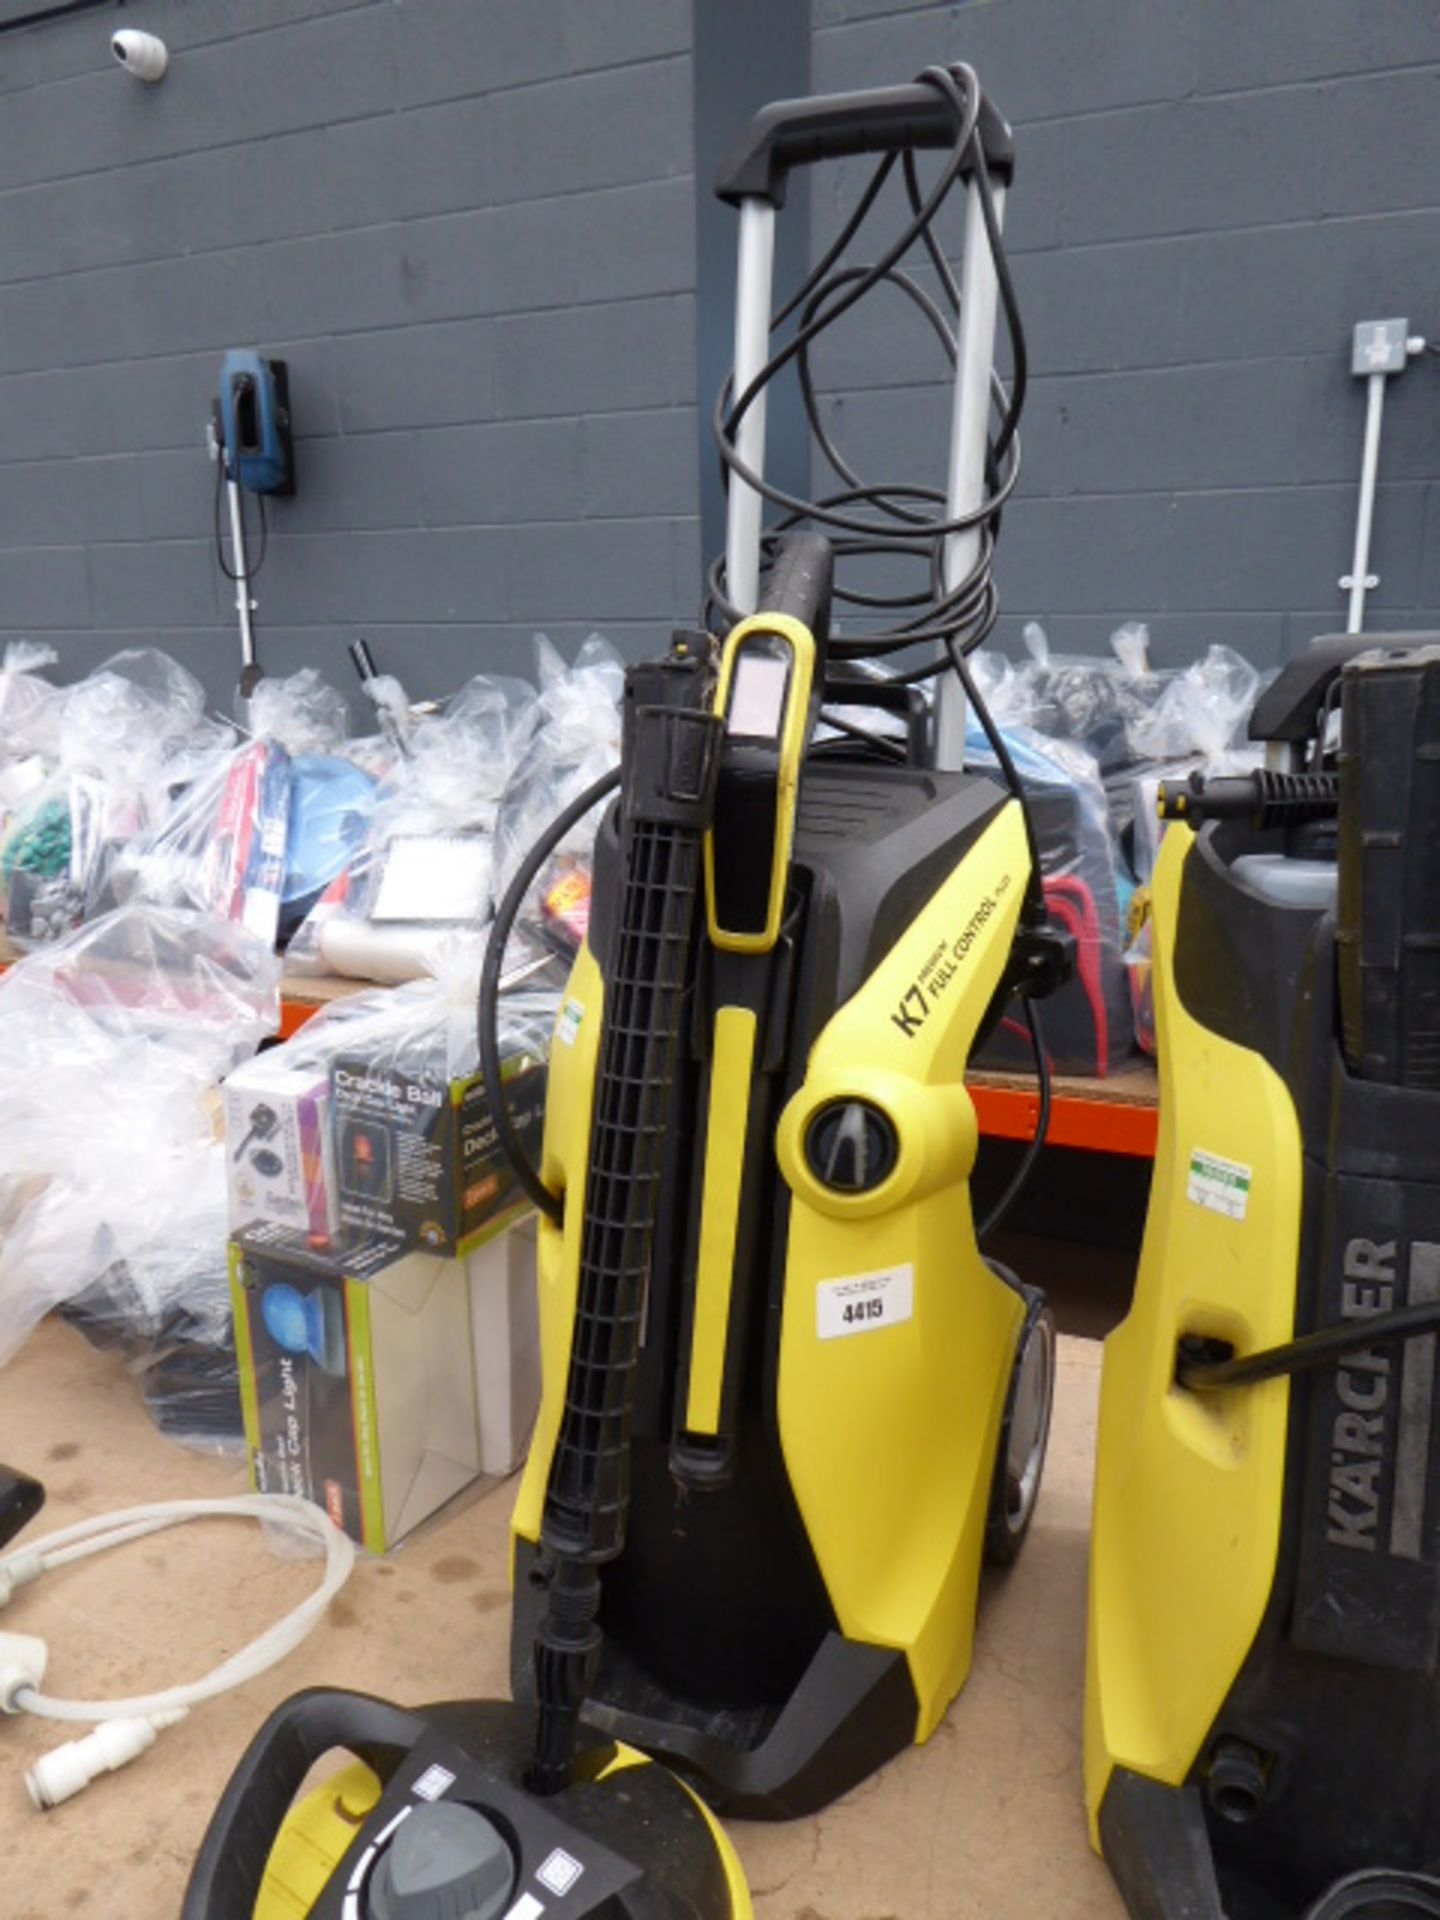 Lot 4415 - Karcher K7 premium full control pressure washer with patio cleaning head